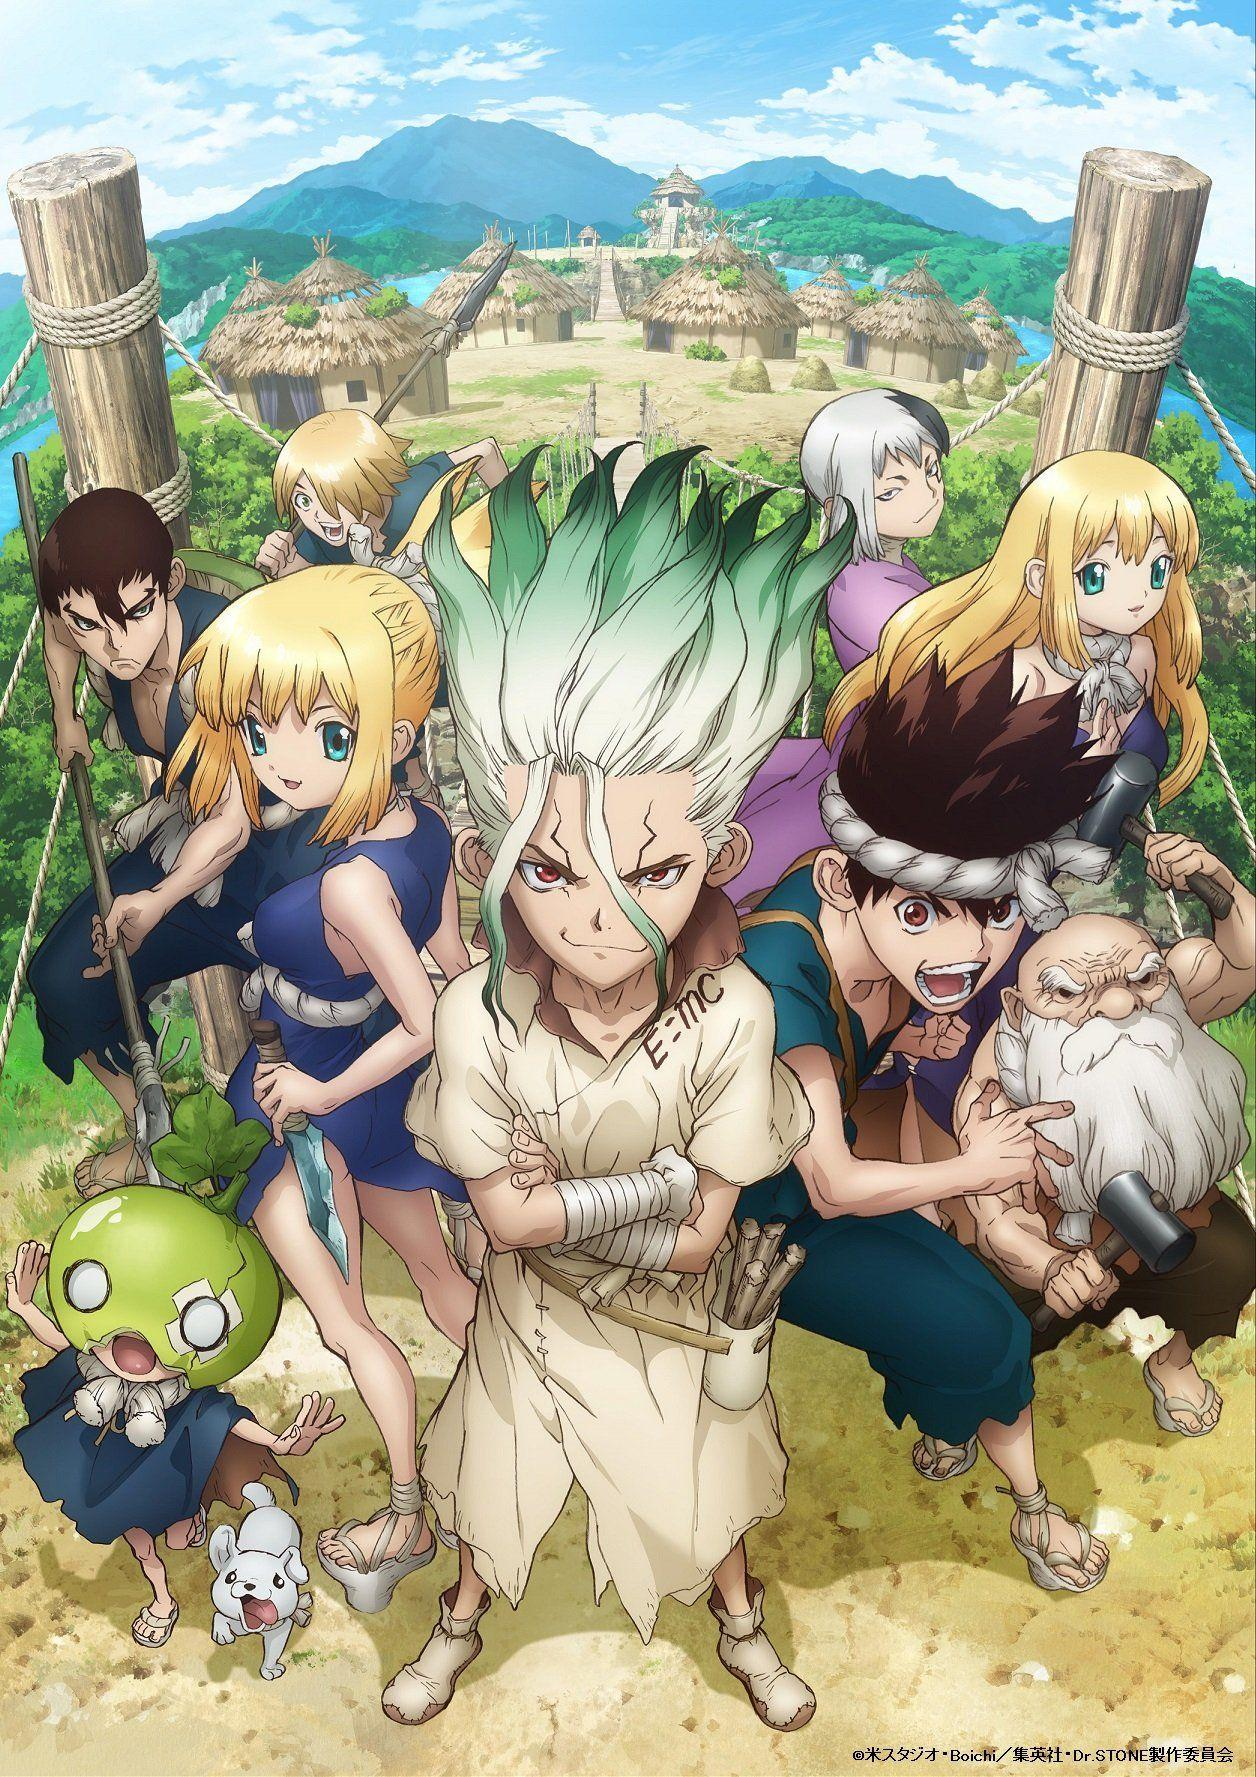 Dr. Stone Hd Anime Wallpapers - Wallpaper Cave